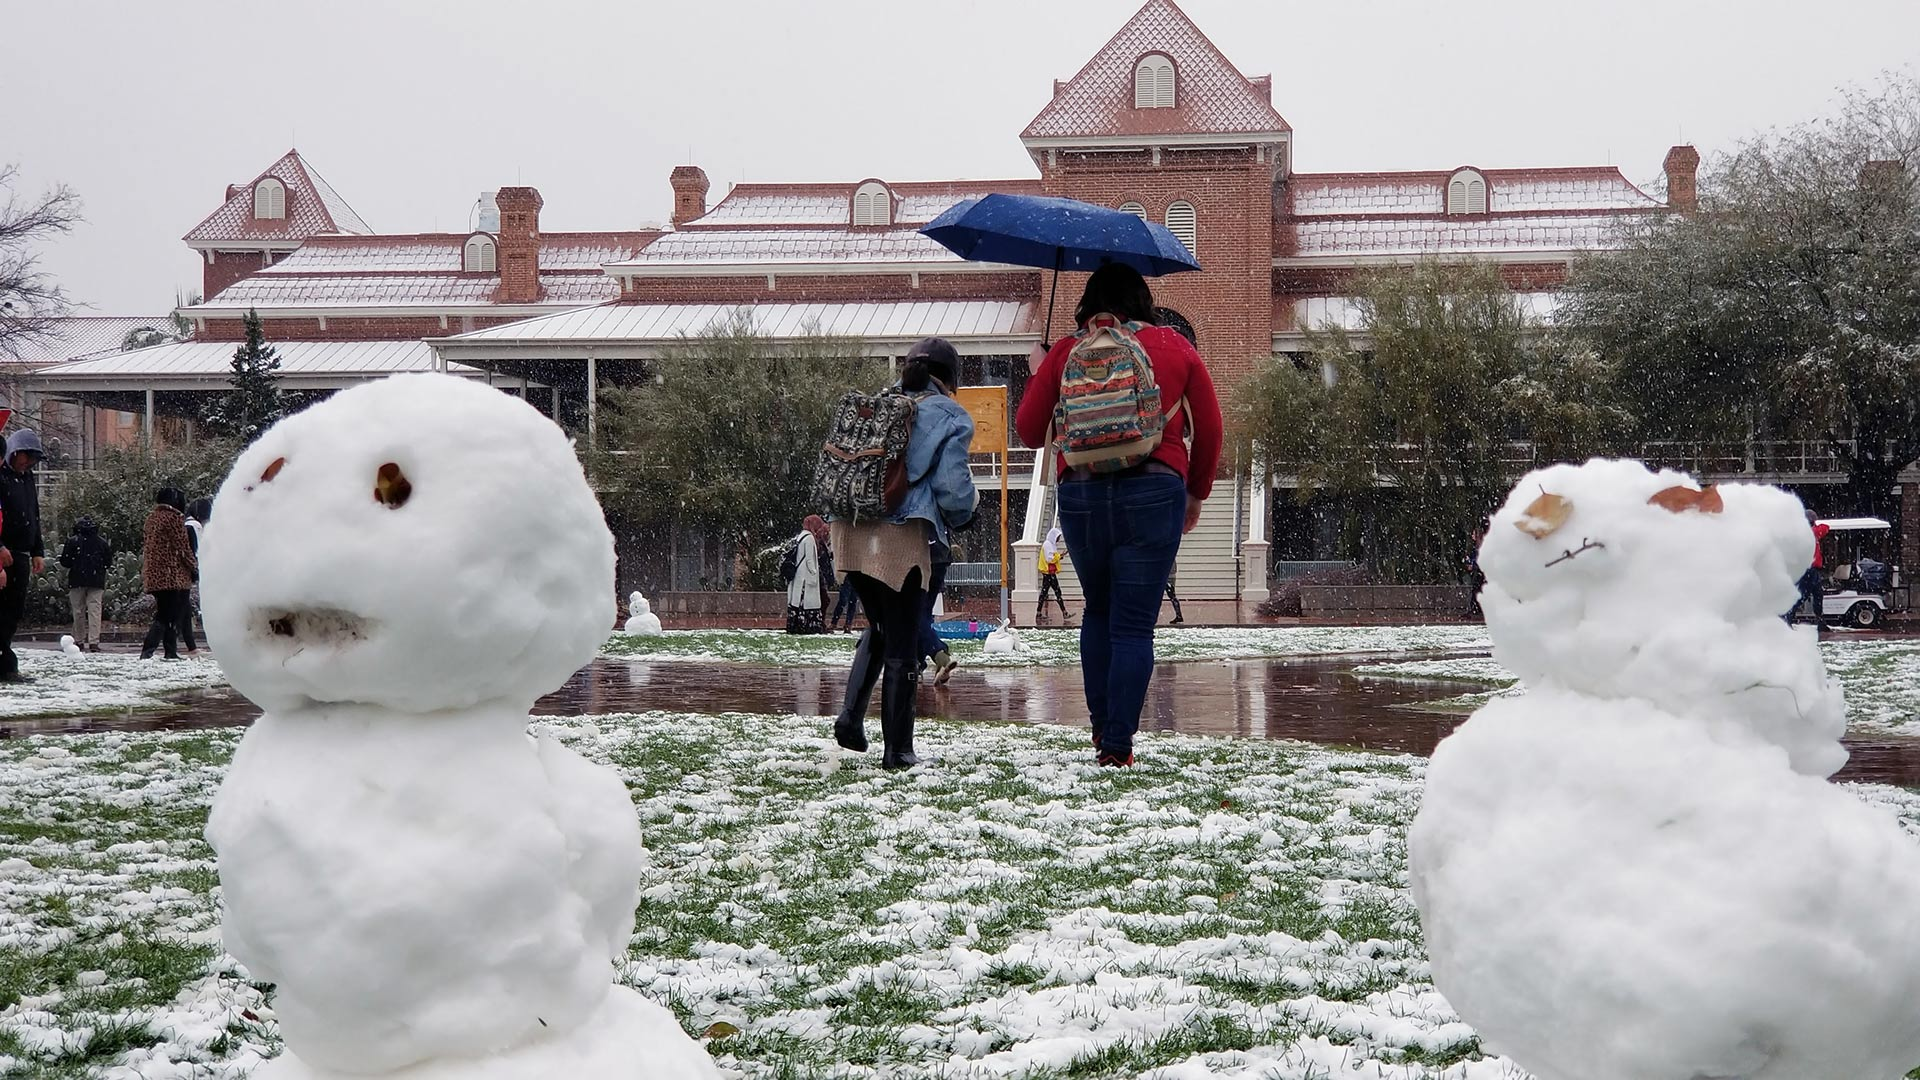 Students and staff enjoy the snowfall on the University of Arizona mall. From February 22, 2019.